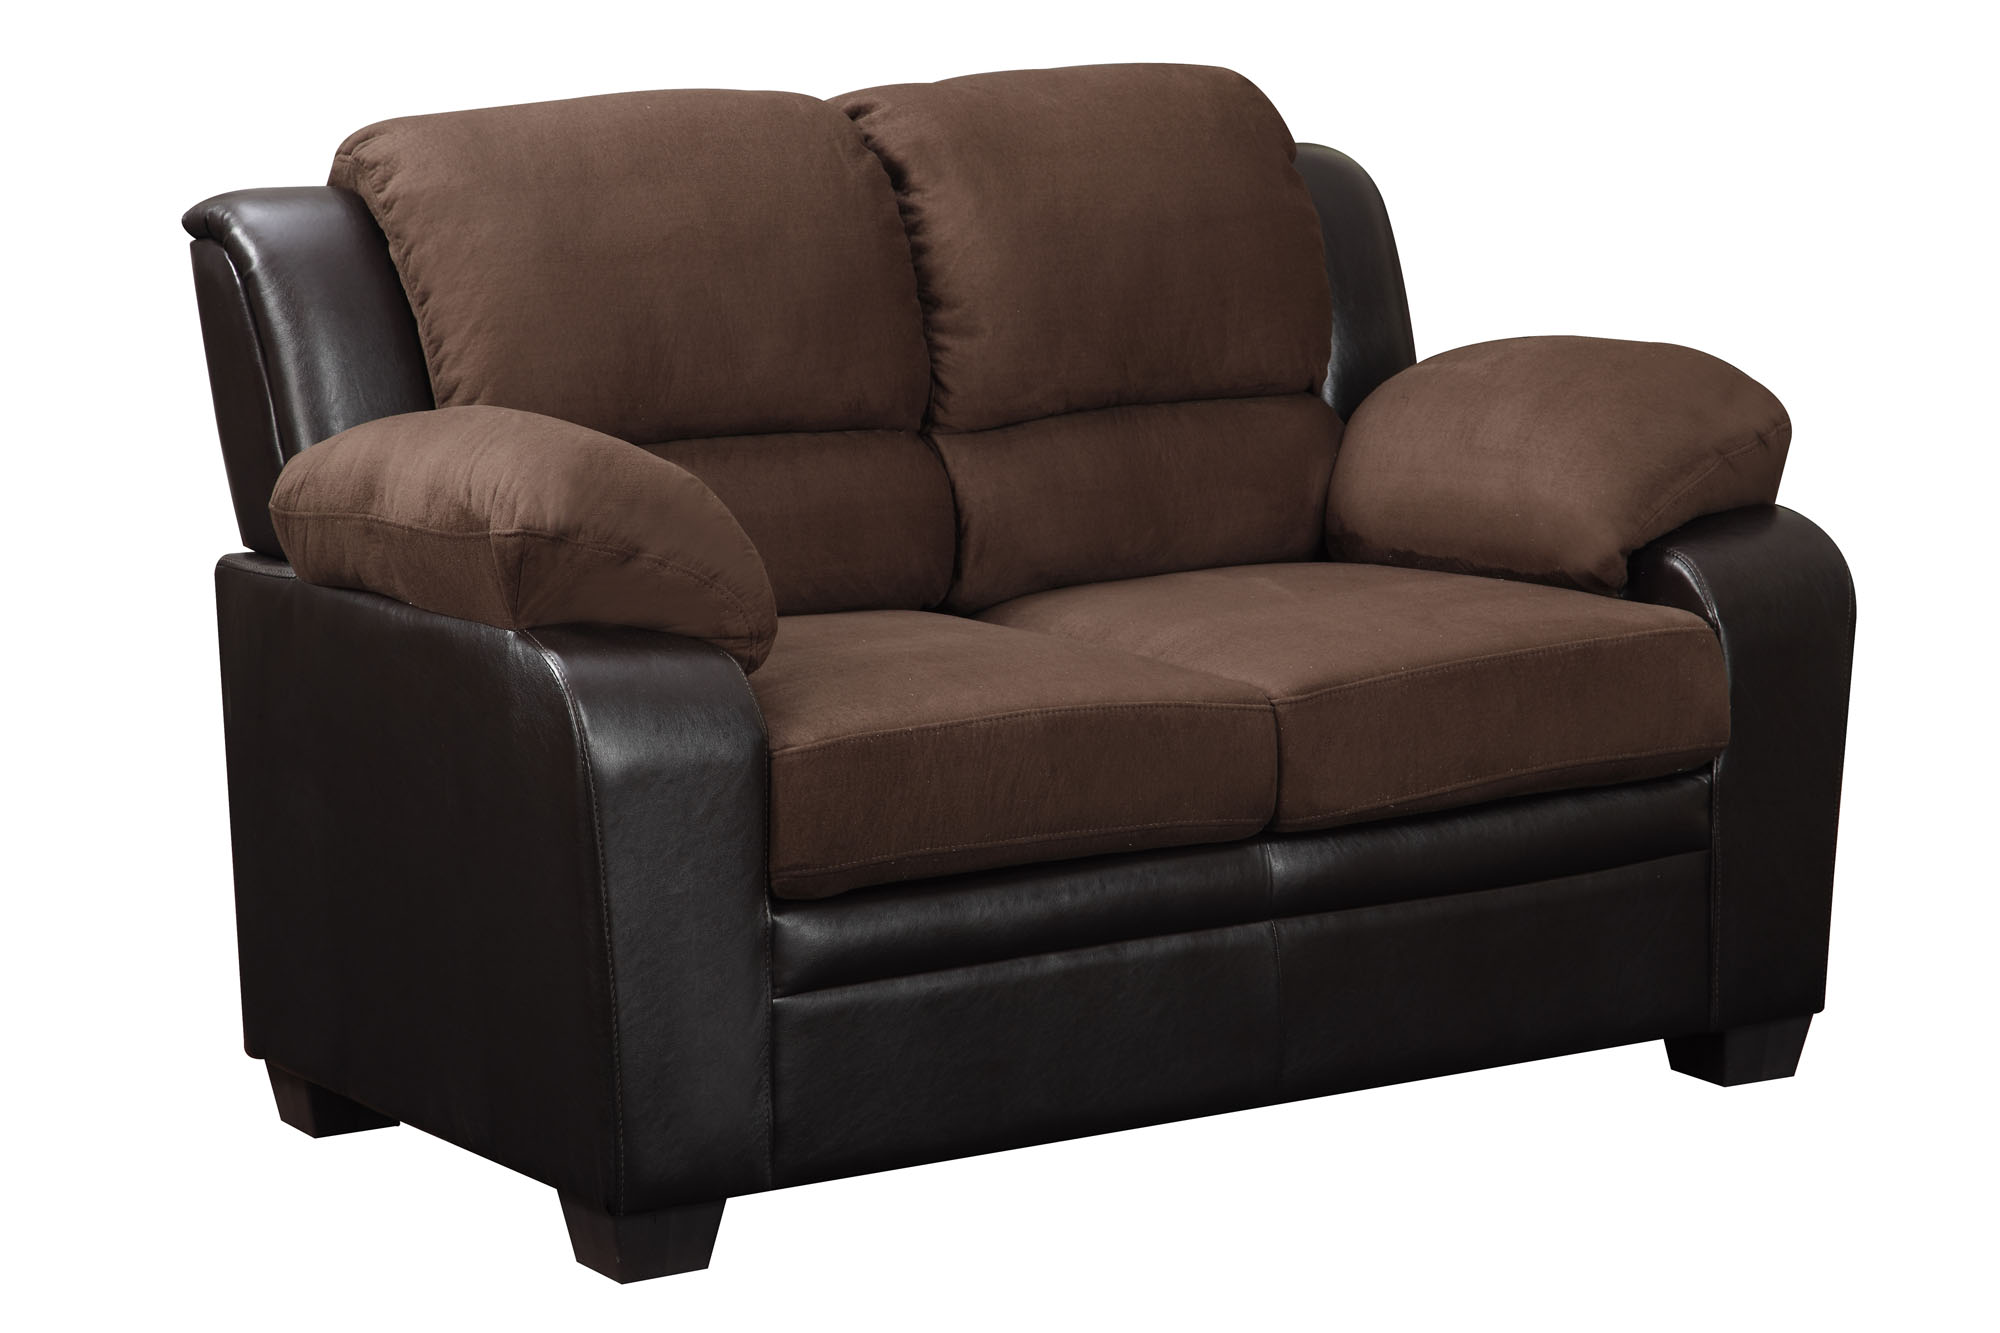 u880018kd chocolate microfiber loveseat by global furniture. Black Bedroom Furniture Sets. Home Design Ideas